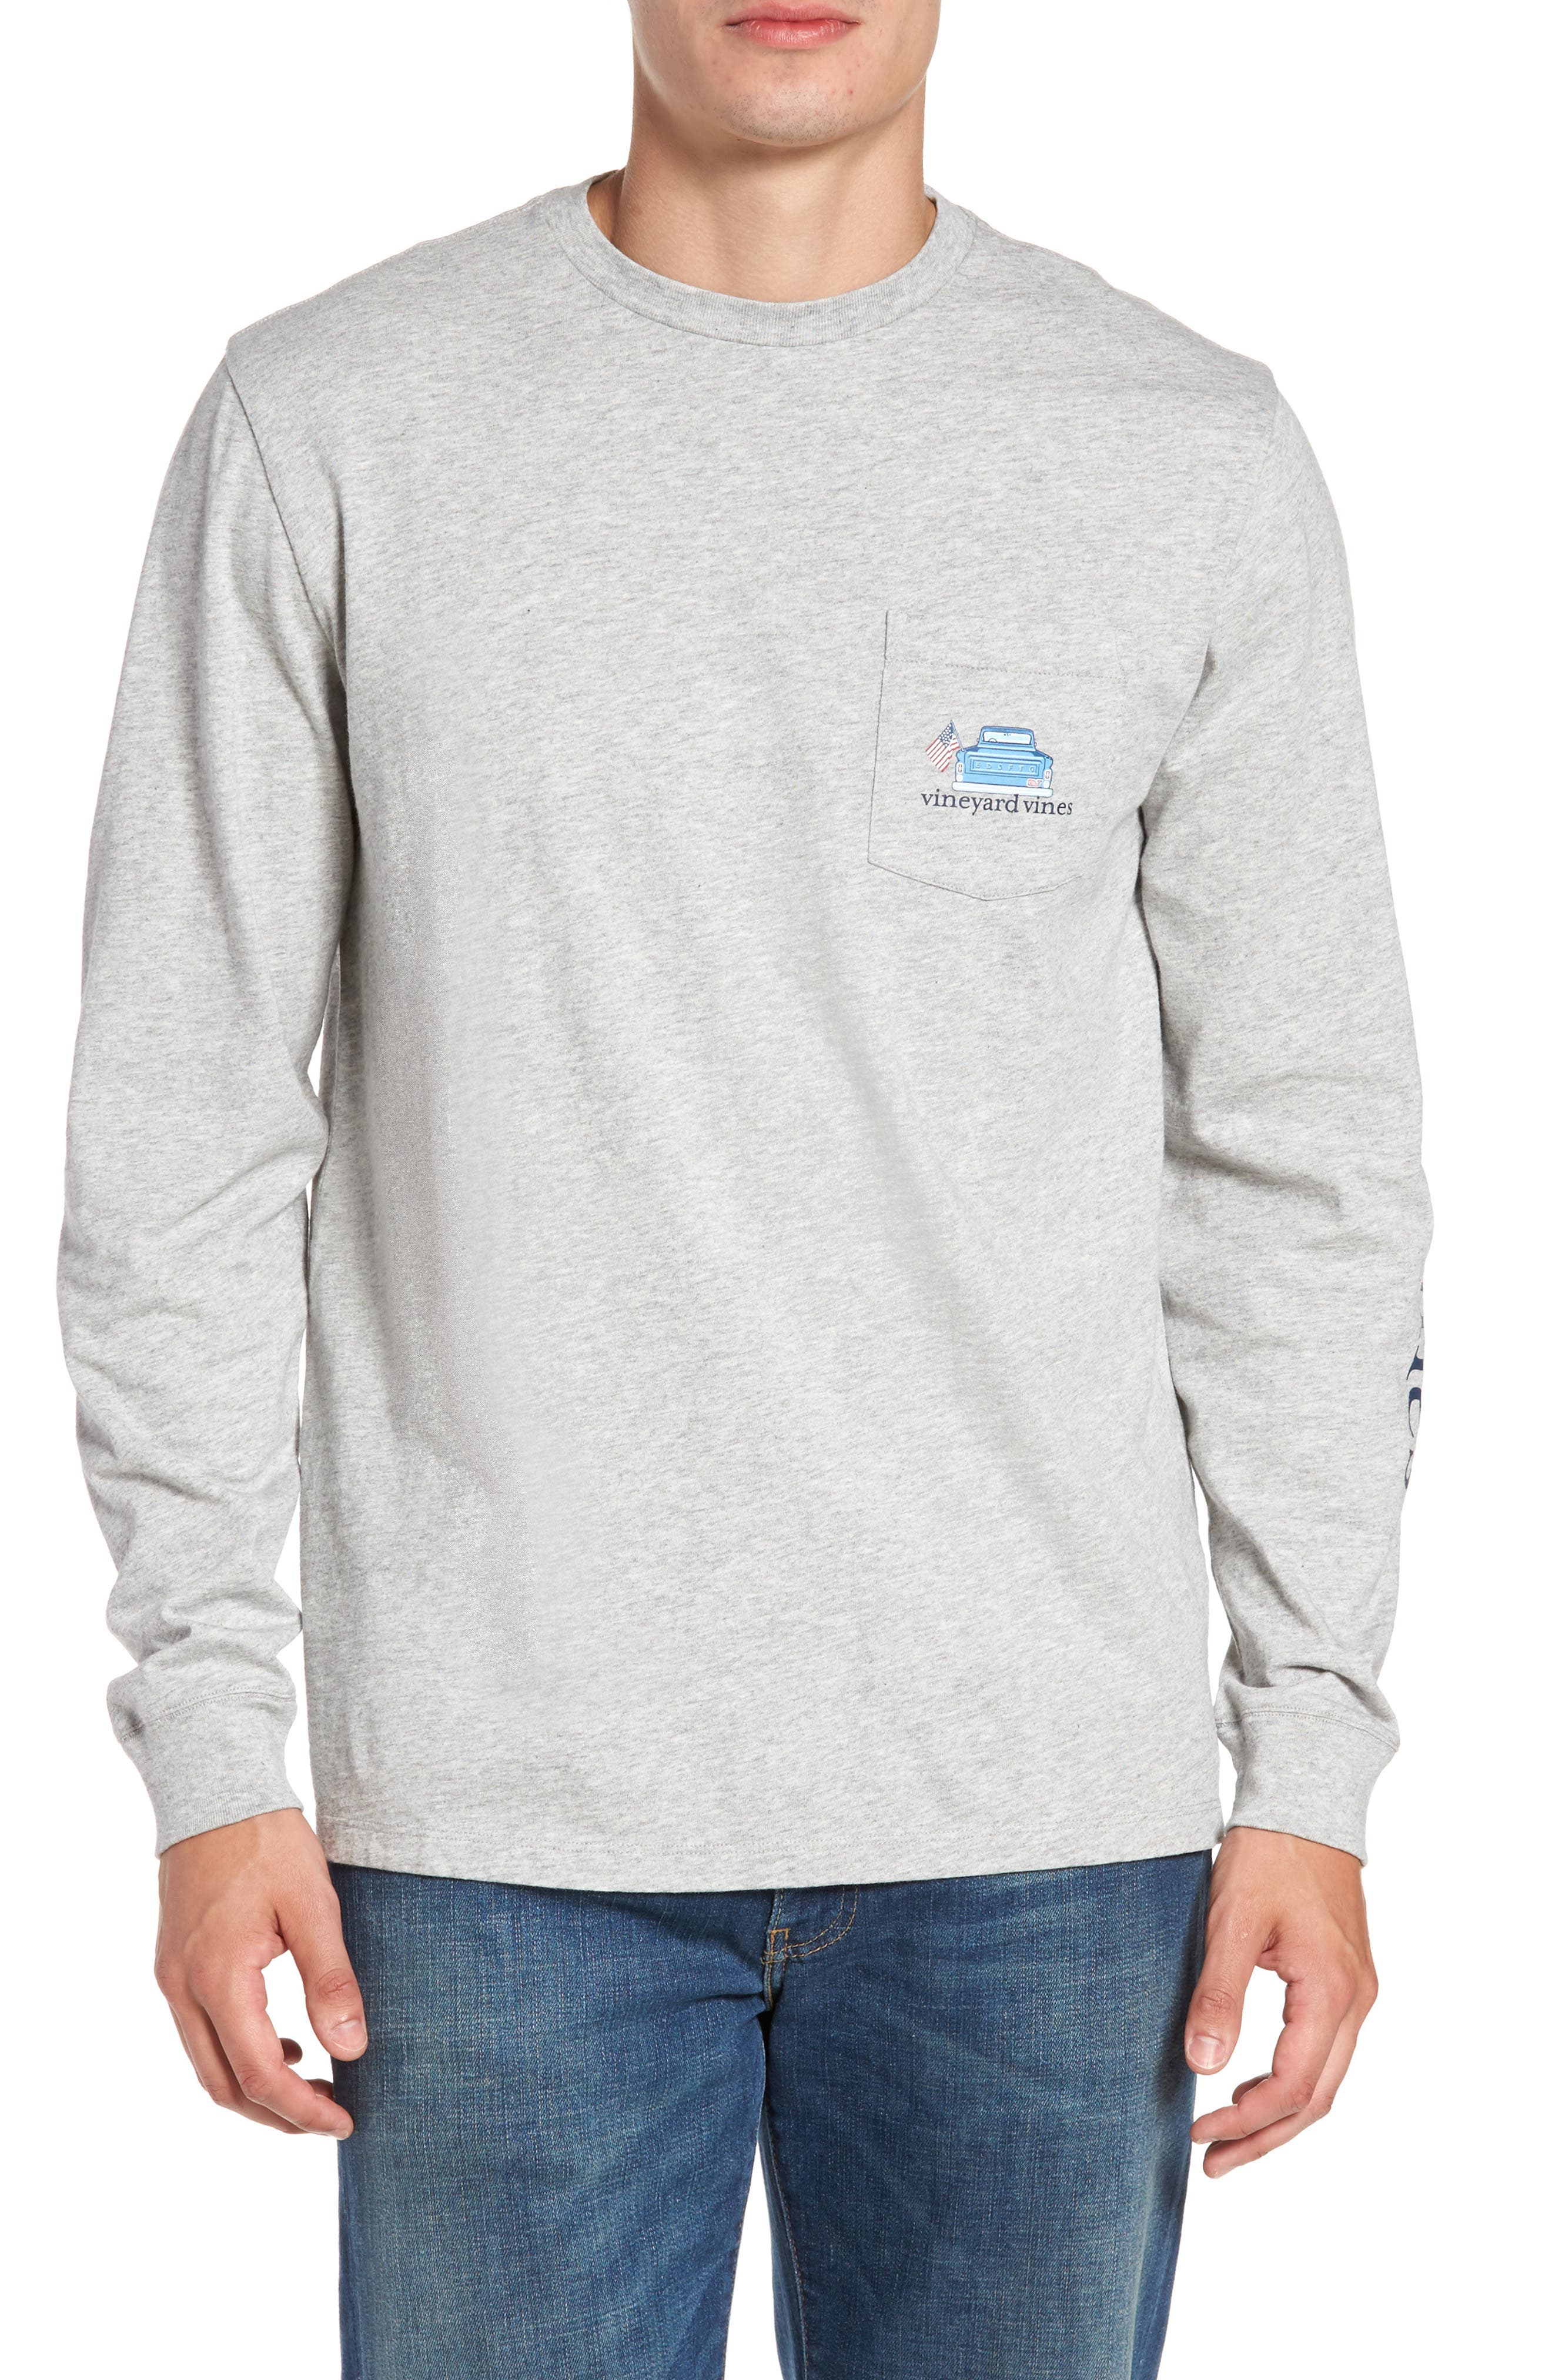 Alternate Image 2  - vineyard vines Americana Game Day Graphic Long Sleeve T-Shirt